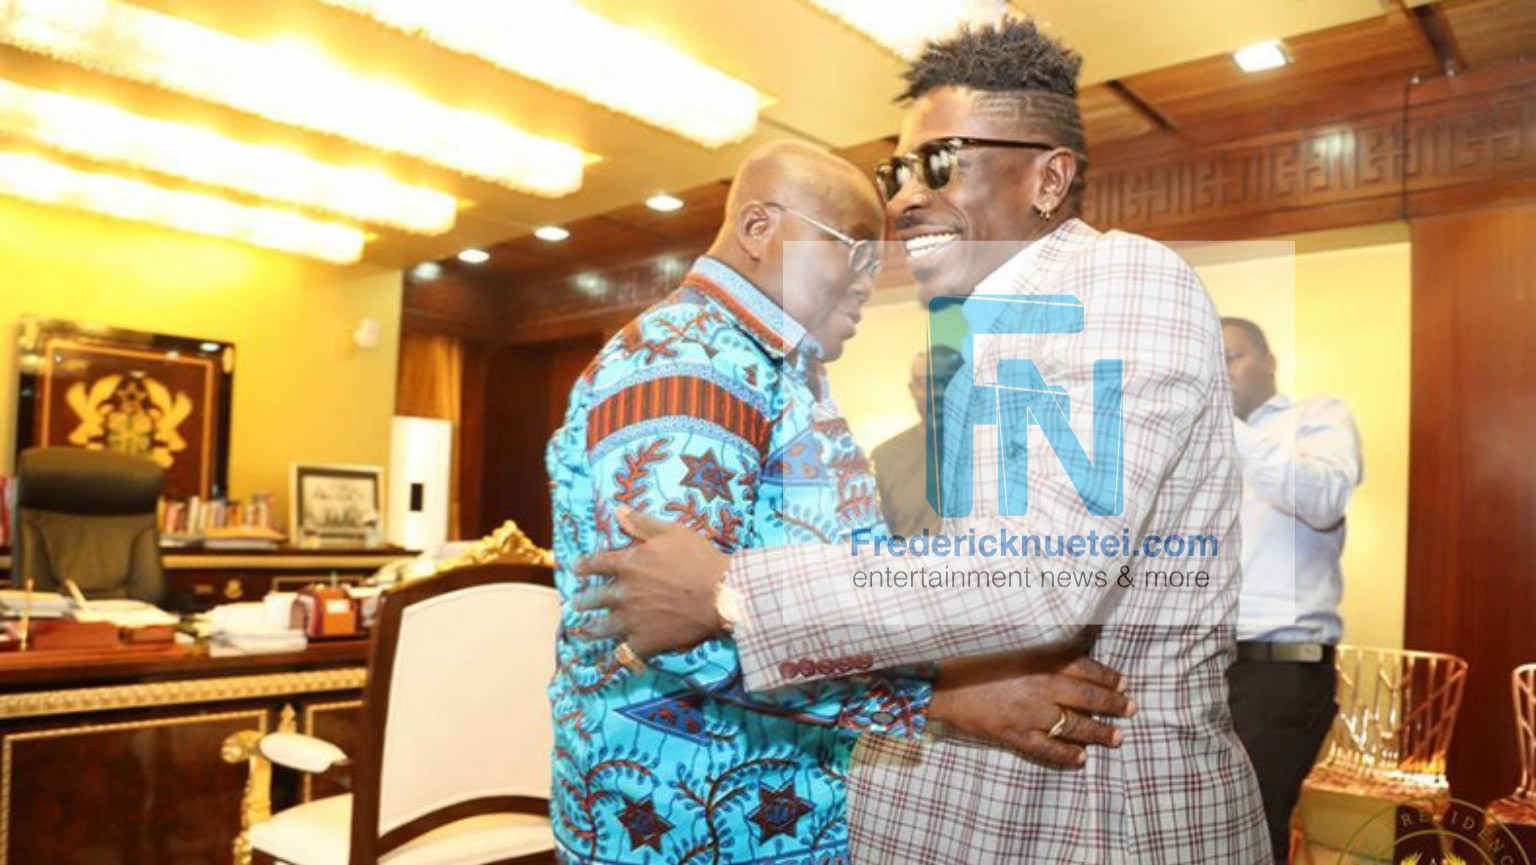 Indeed Shatta Wale Is A King - Nana Akufo-Addo Congratulates Him On His 'Already' Music Video With Beyoncé